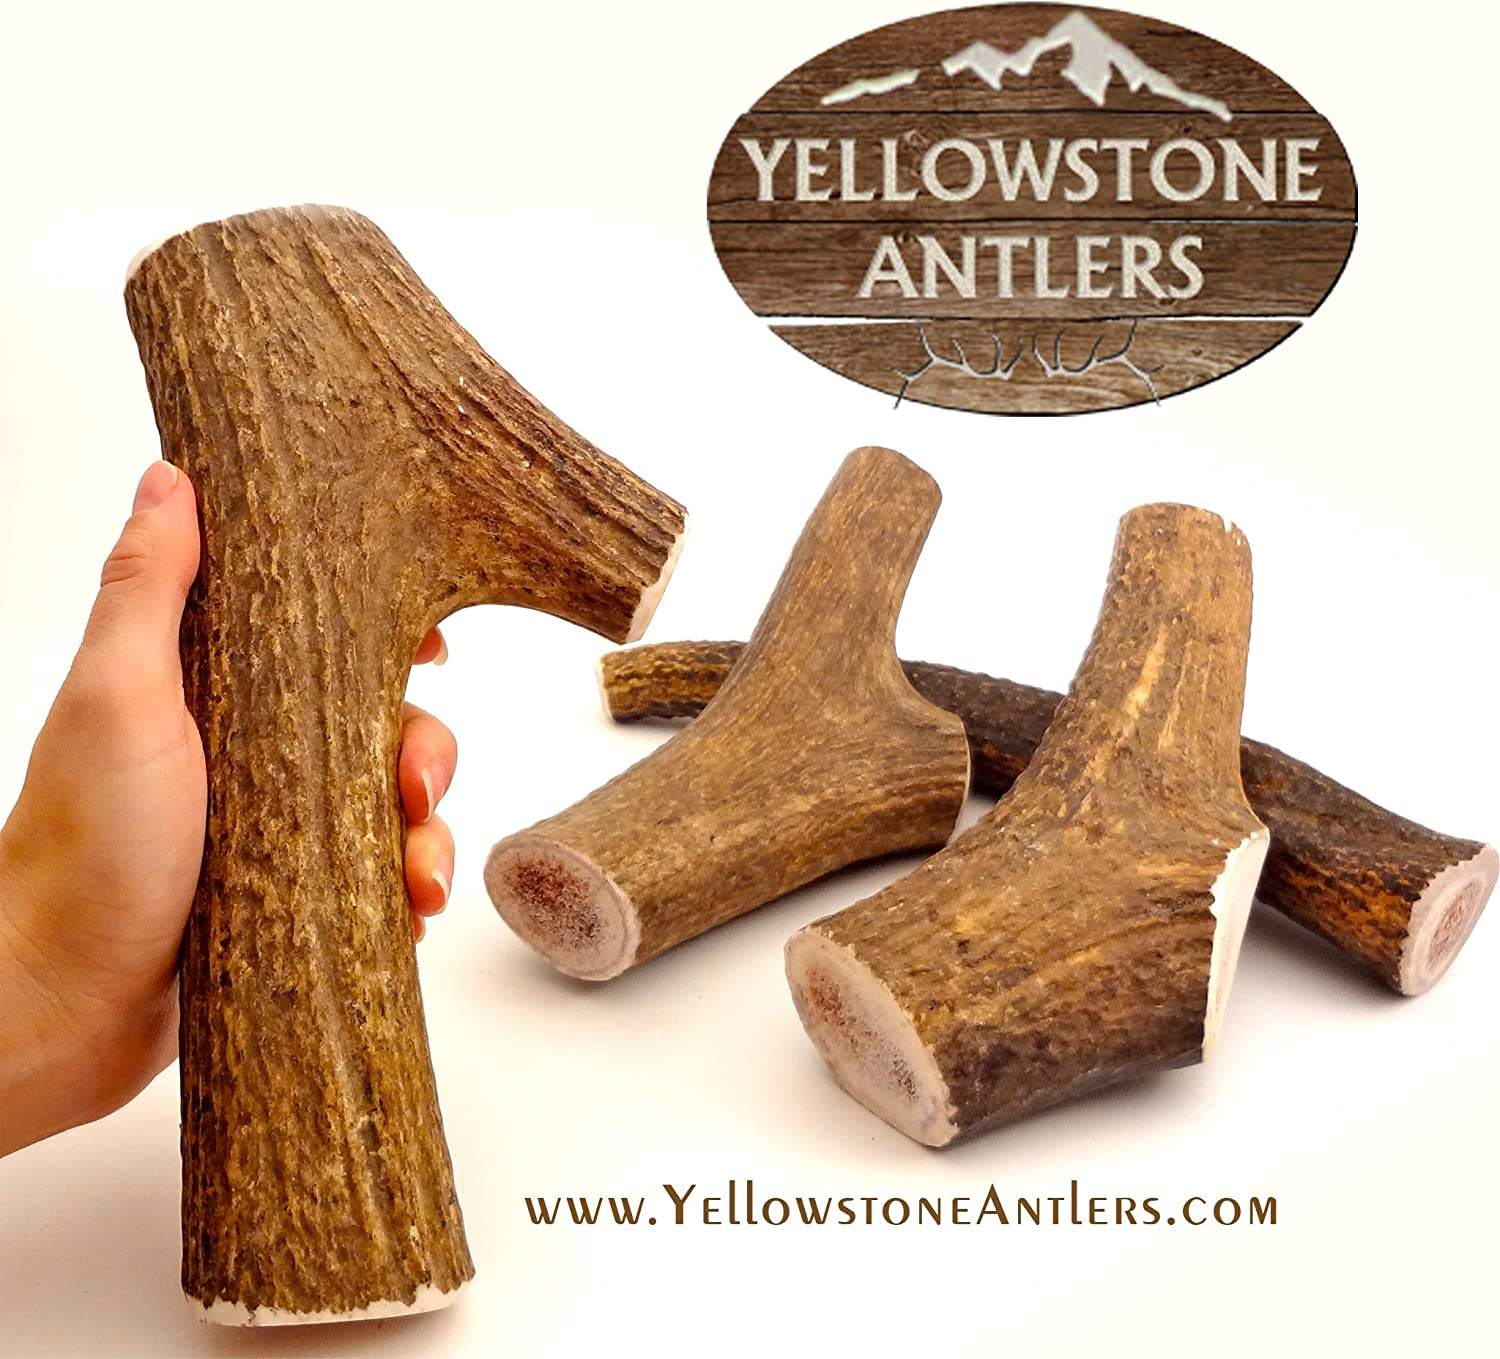 Yellowstone Antlers Grade-A Made in USA, XL Extra-Large Size 8.5-10.5 Inches Long 12-14 Ounces, X-Large Elk Antler Dog Chews, Dog Bones, Elk Bones Organic Dog Chews for Large, X- Large Dogs